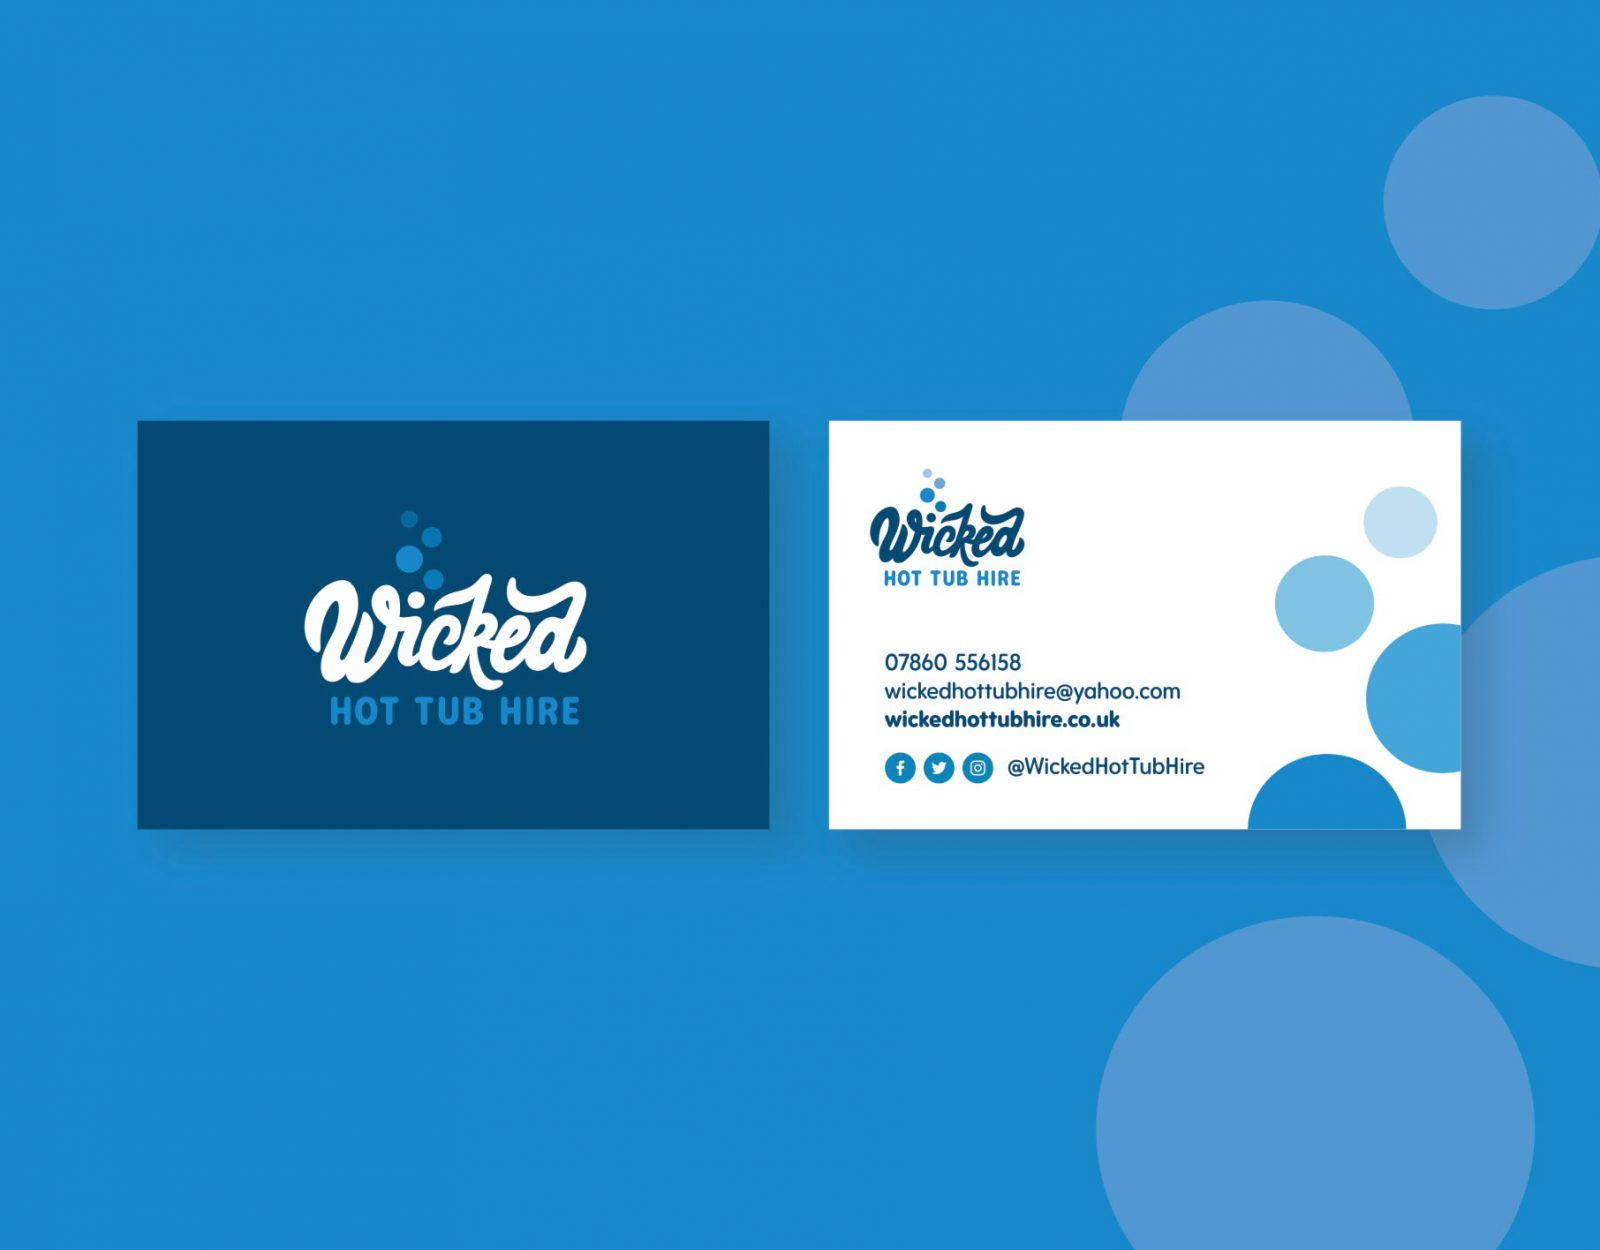 Wicked Hot Tub Hire business card